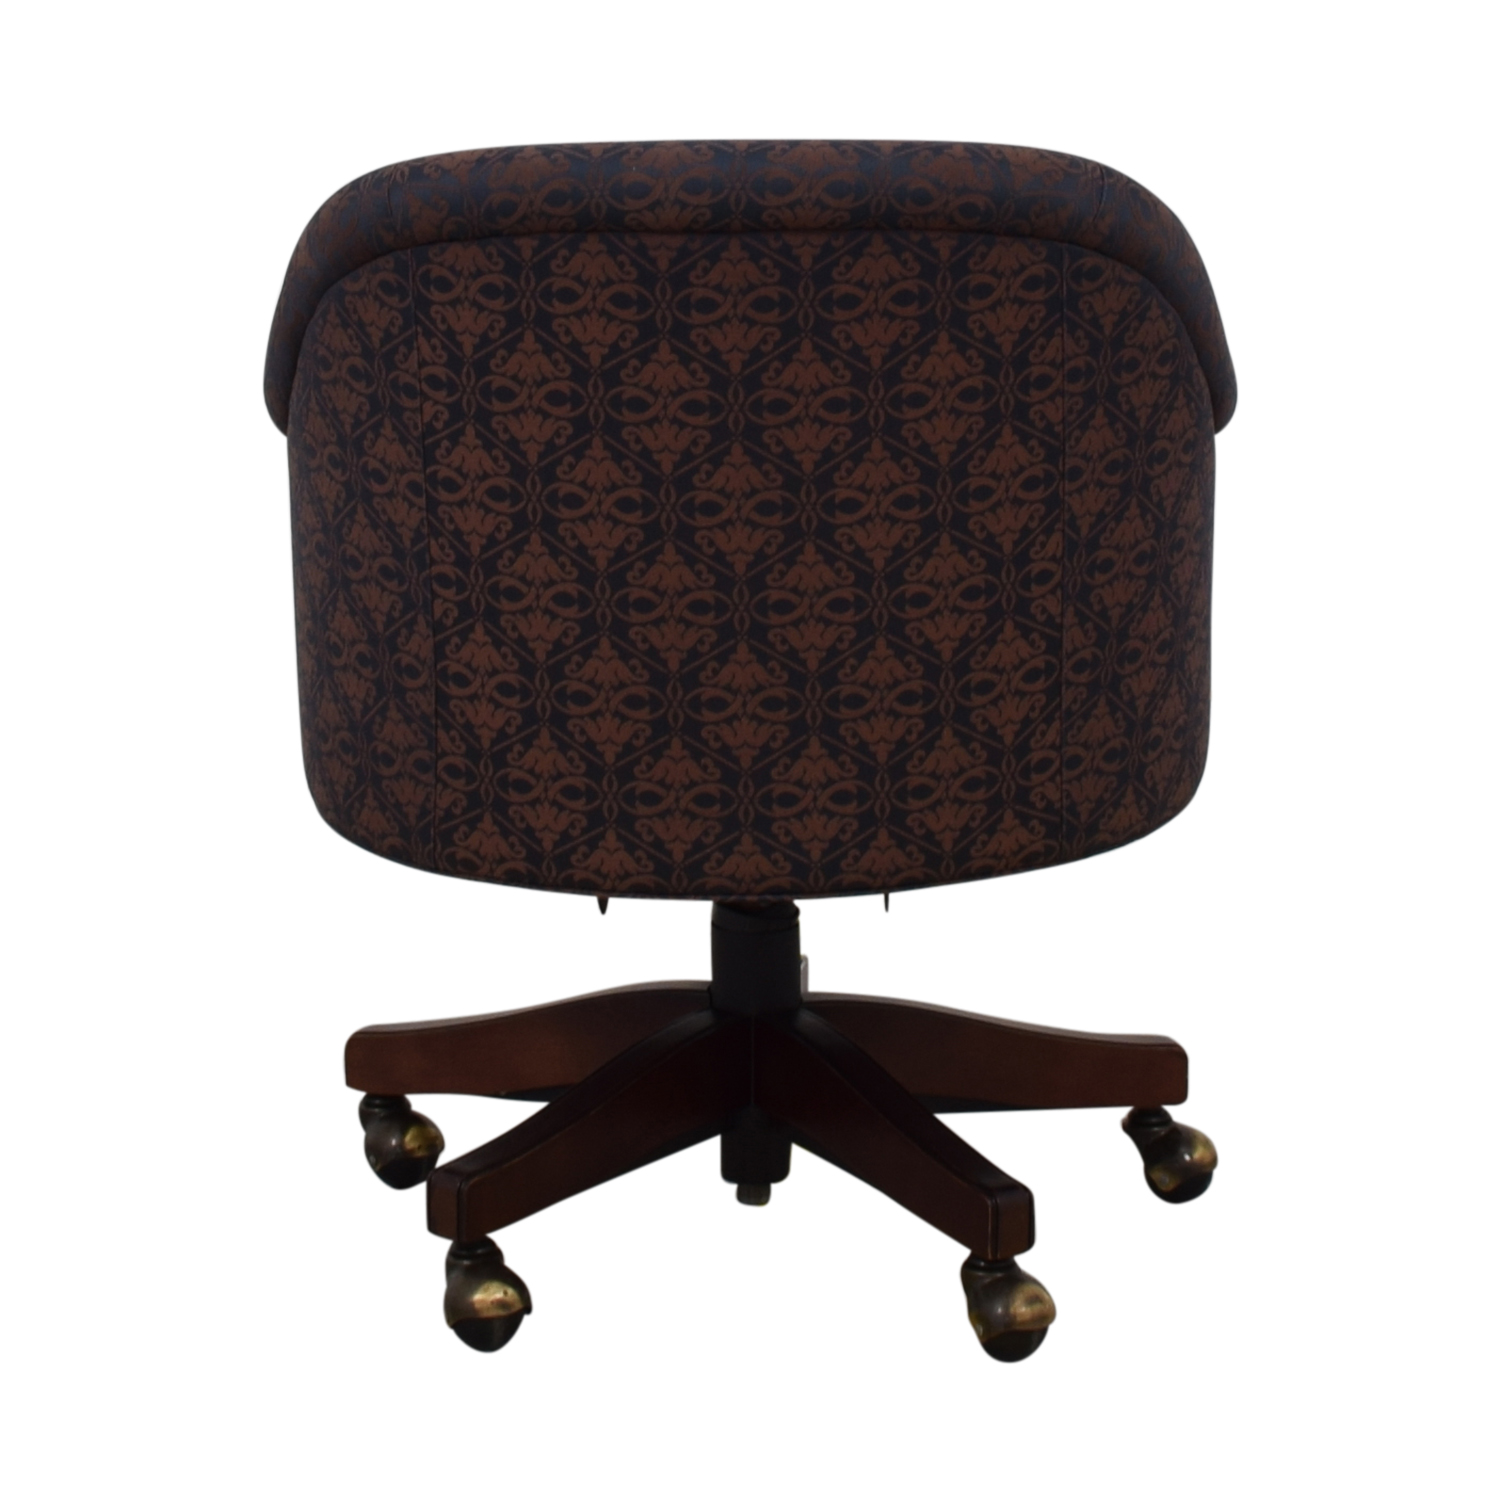 shop Kimball Independence Newcastle Swivel Chair Kimball Home Office Chairs